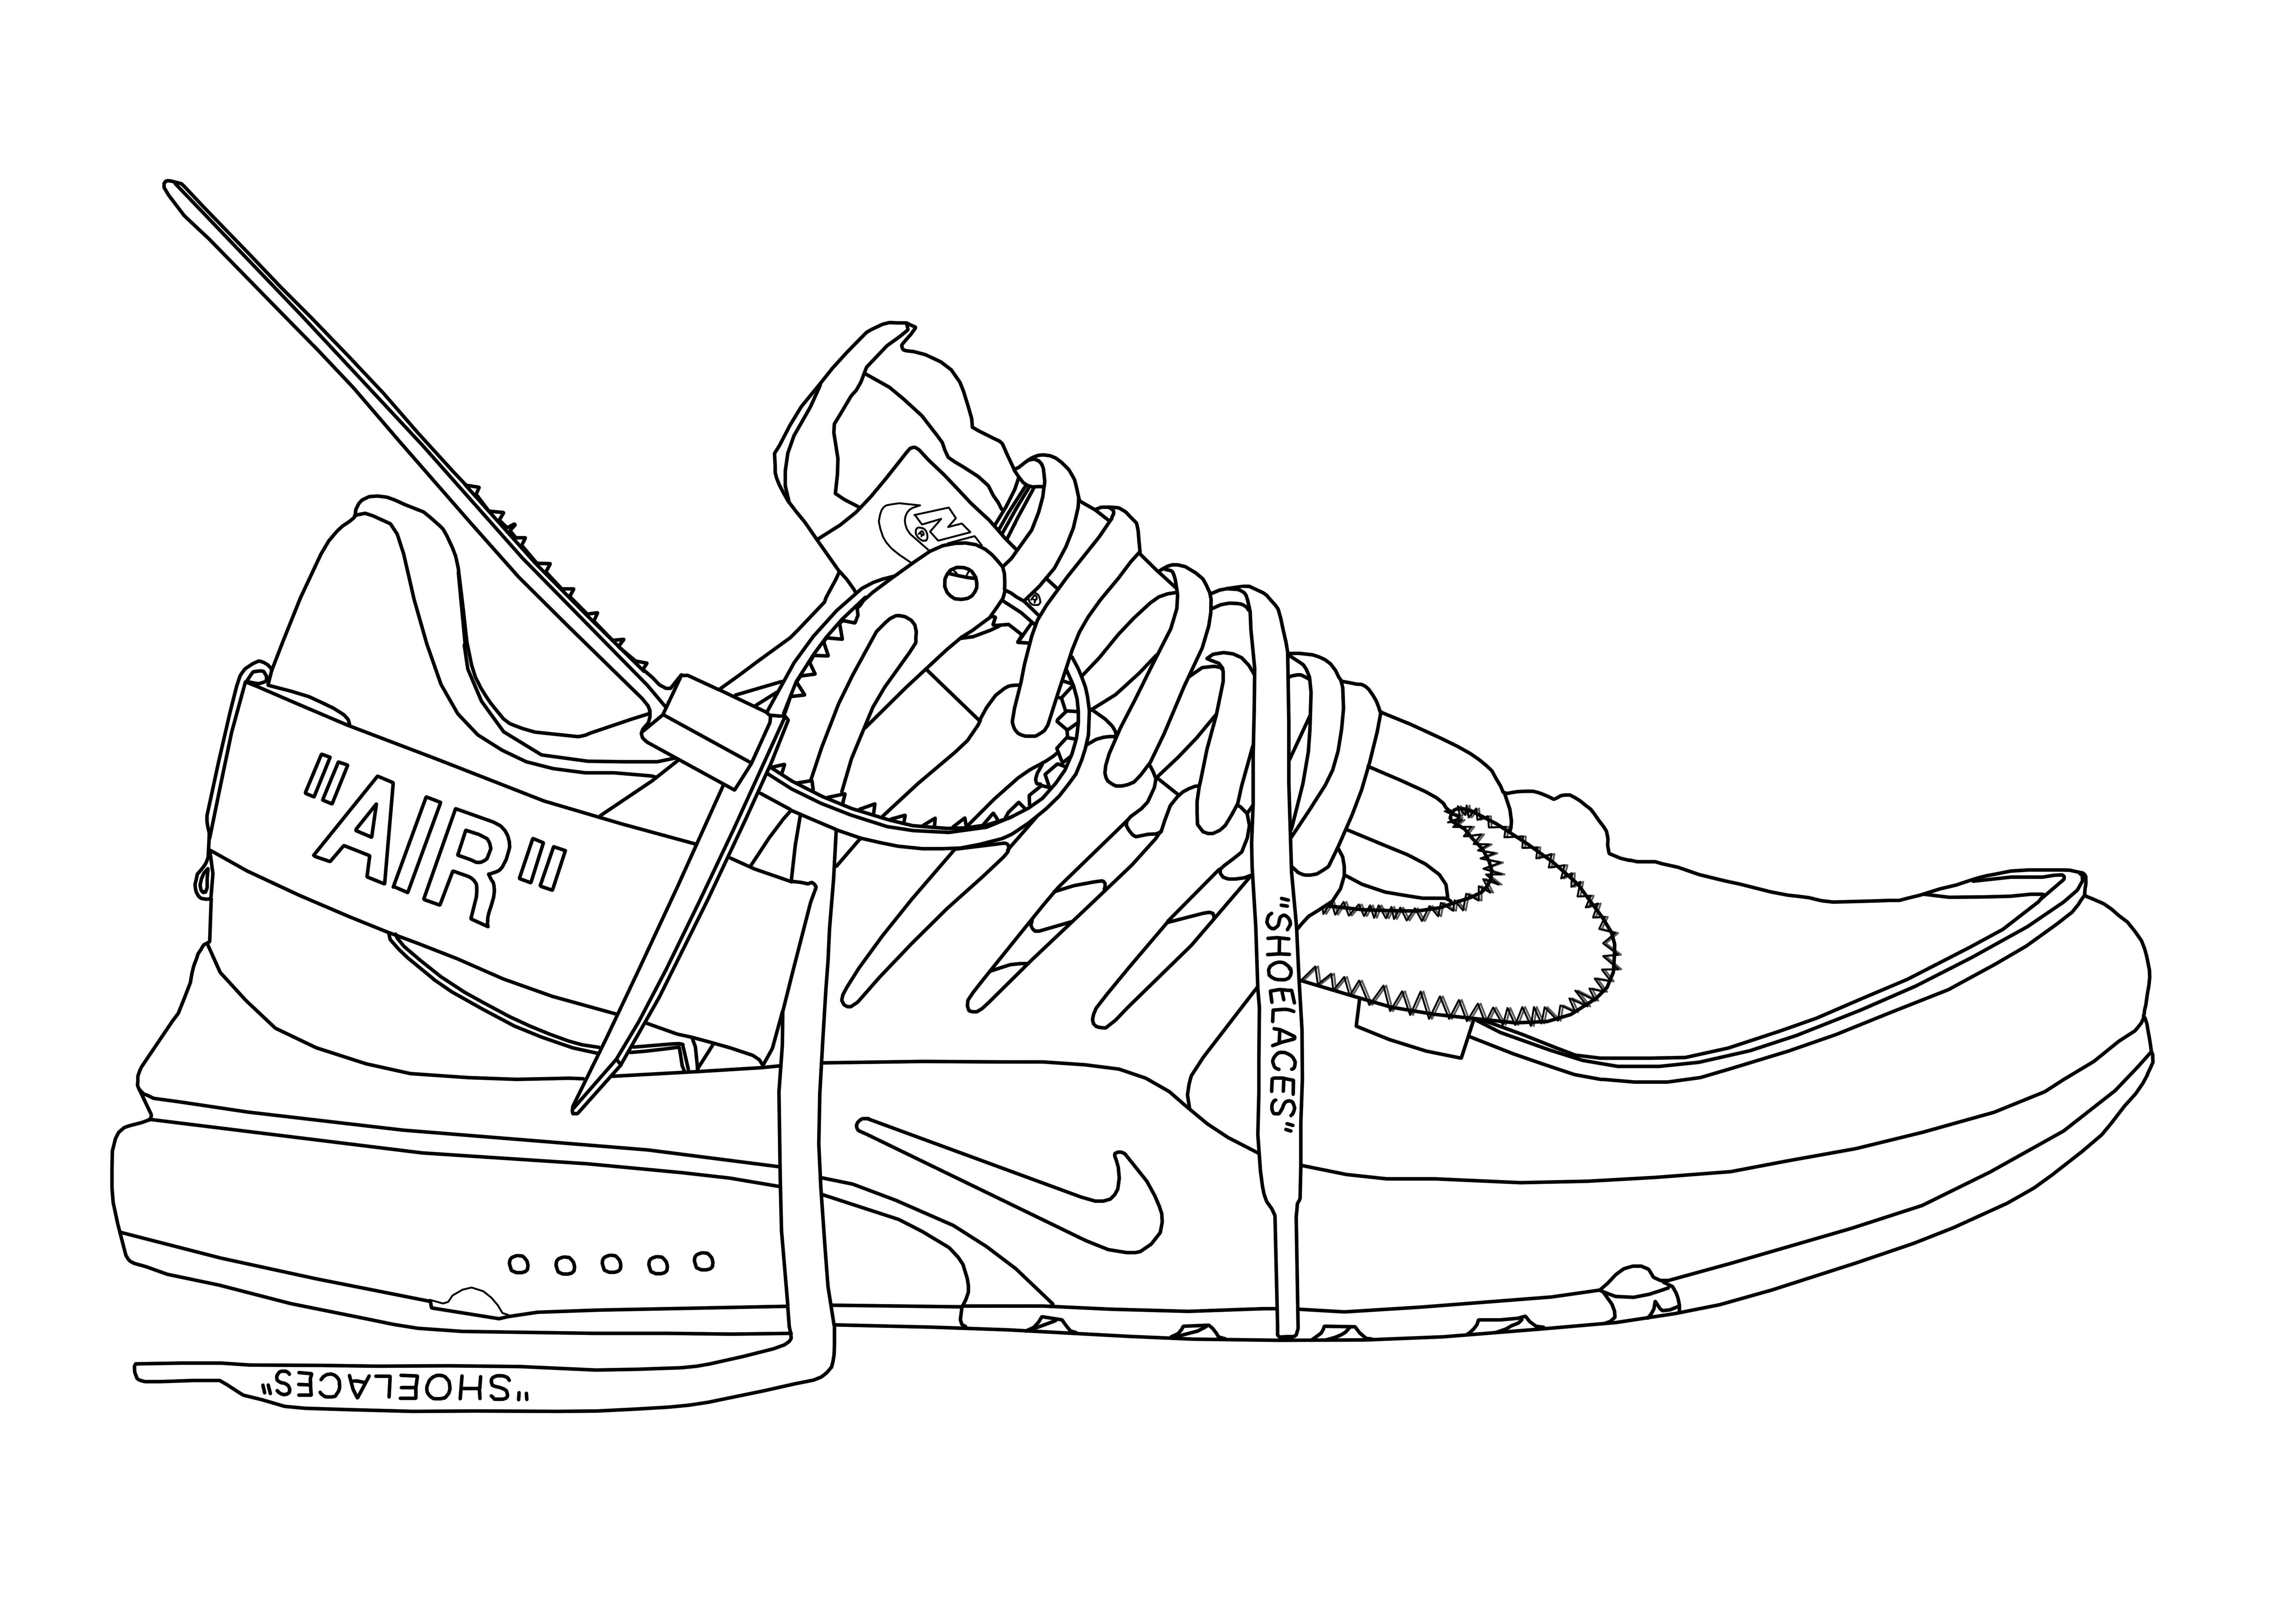 Off White Air Presto Outline Shoe Design Sketches Shoes Drawing